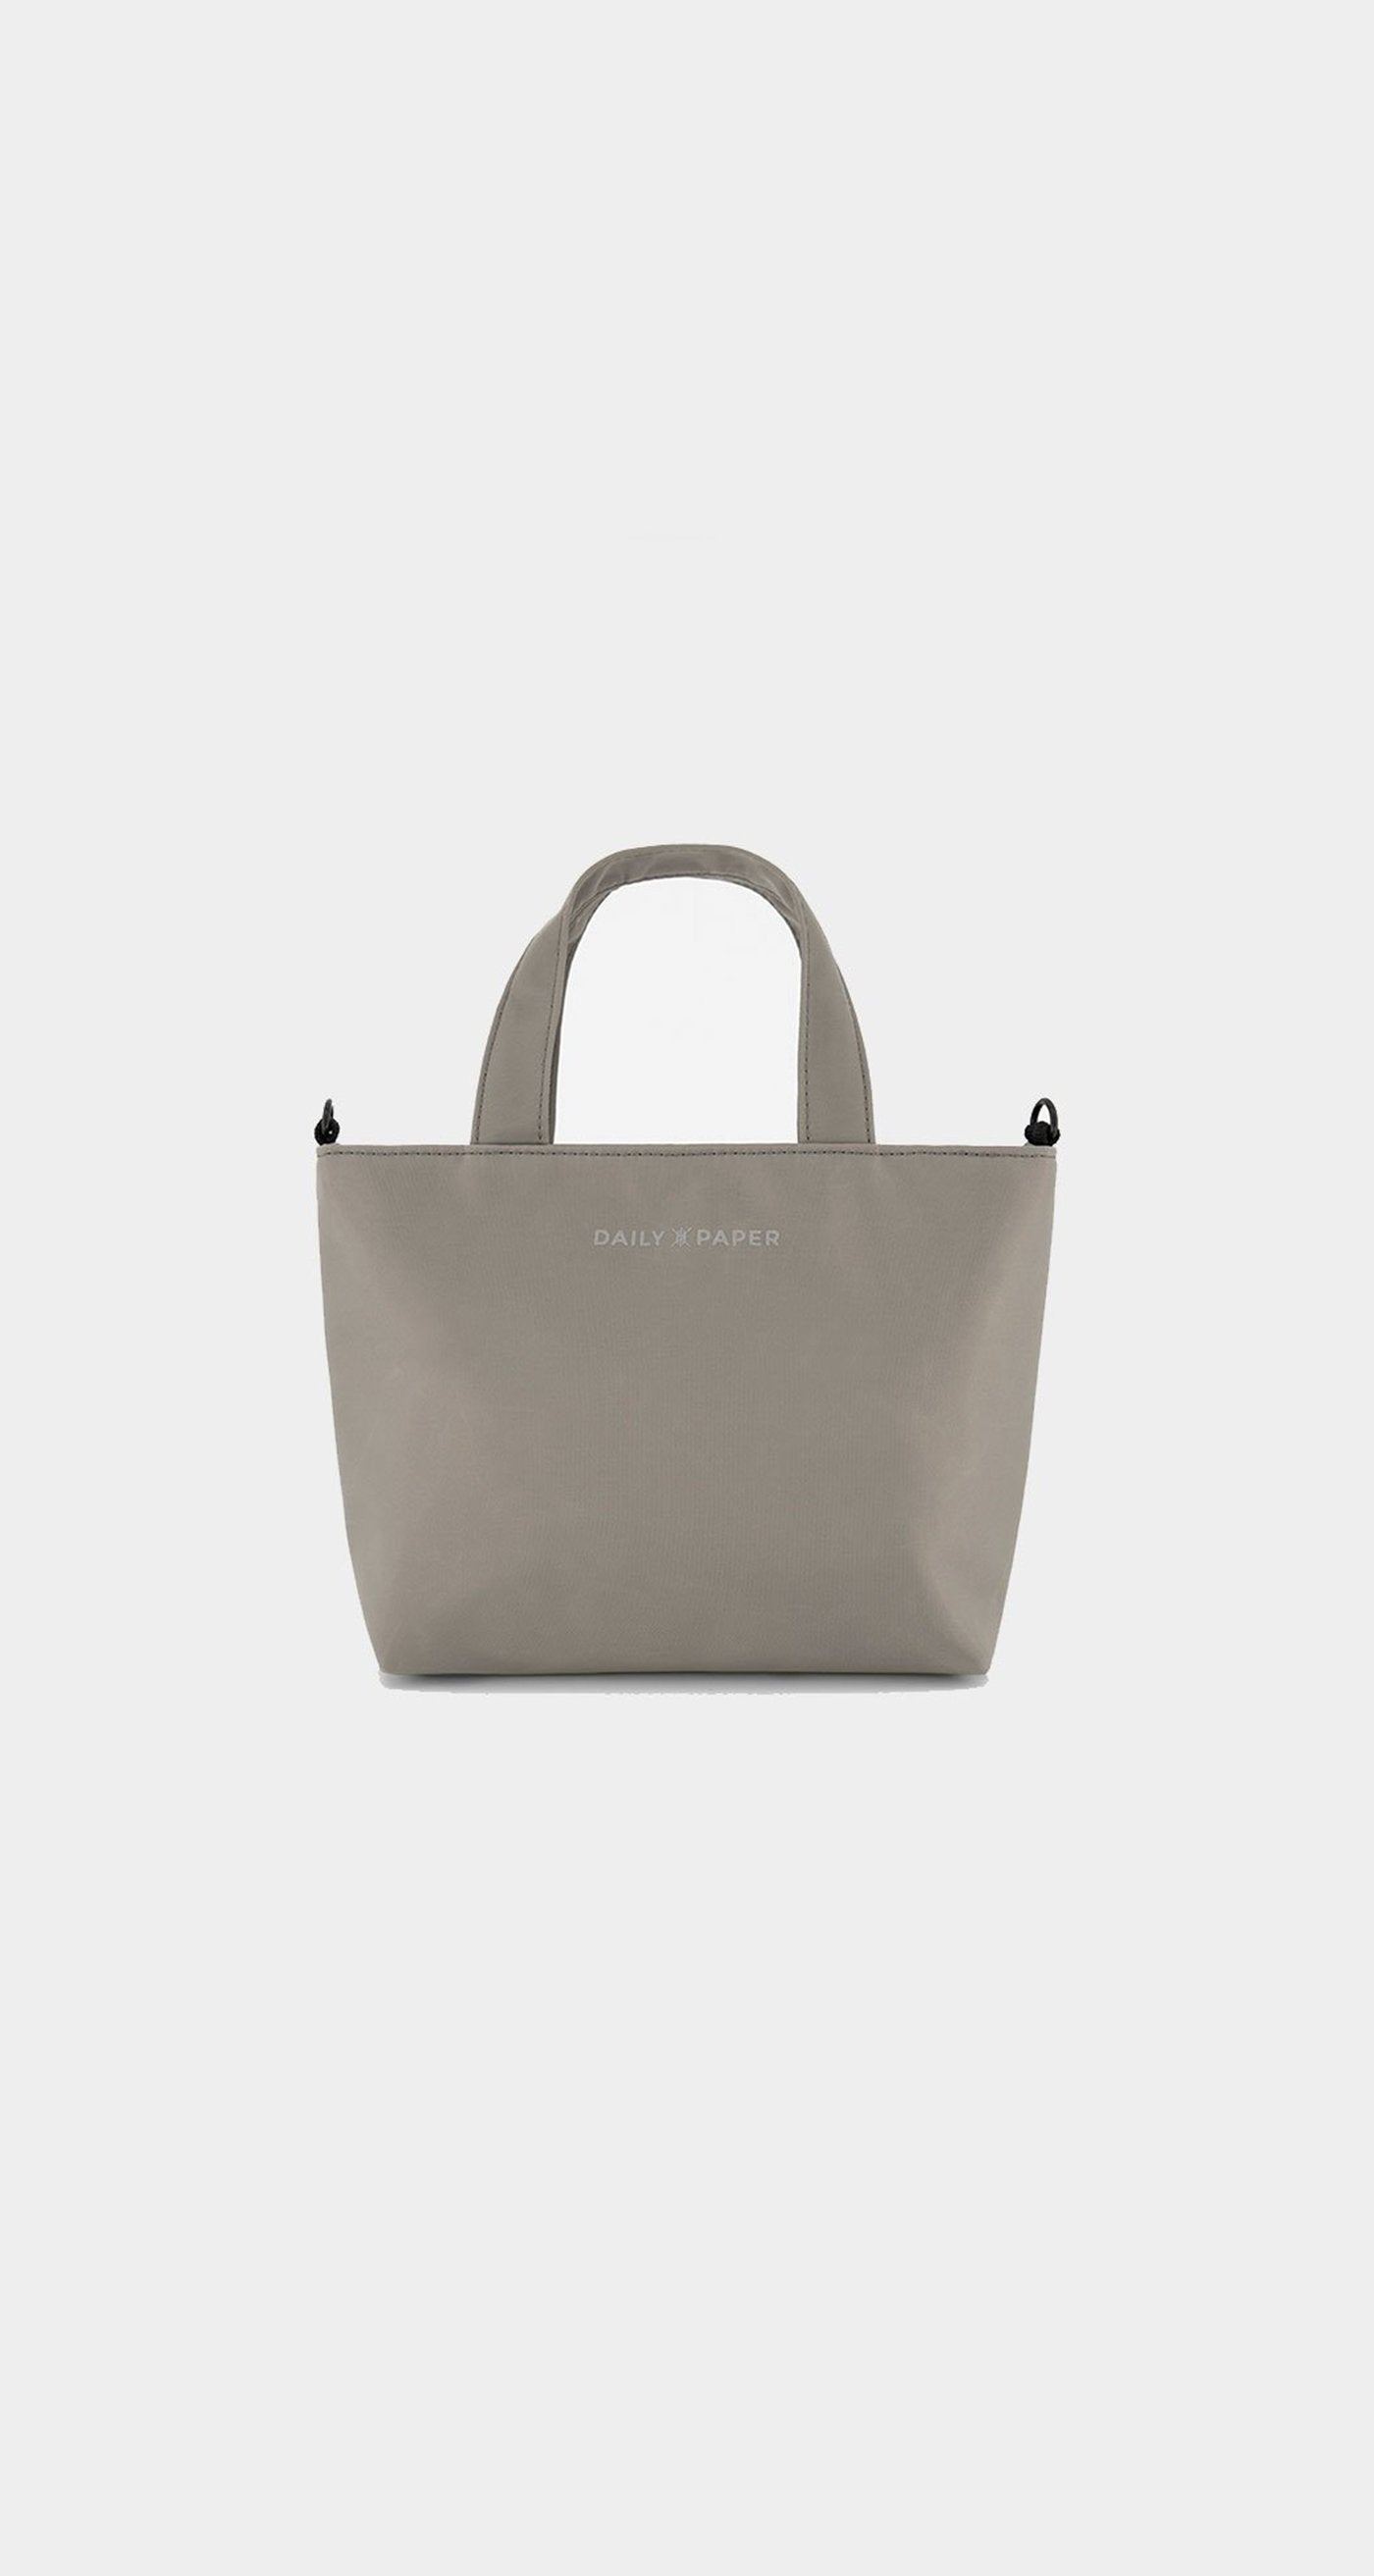 Daily Paper - Warm Grey Etiny Bag